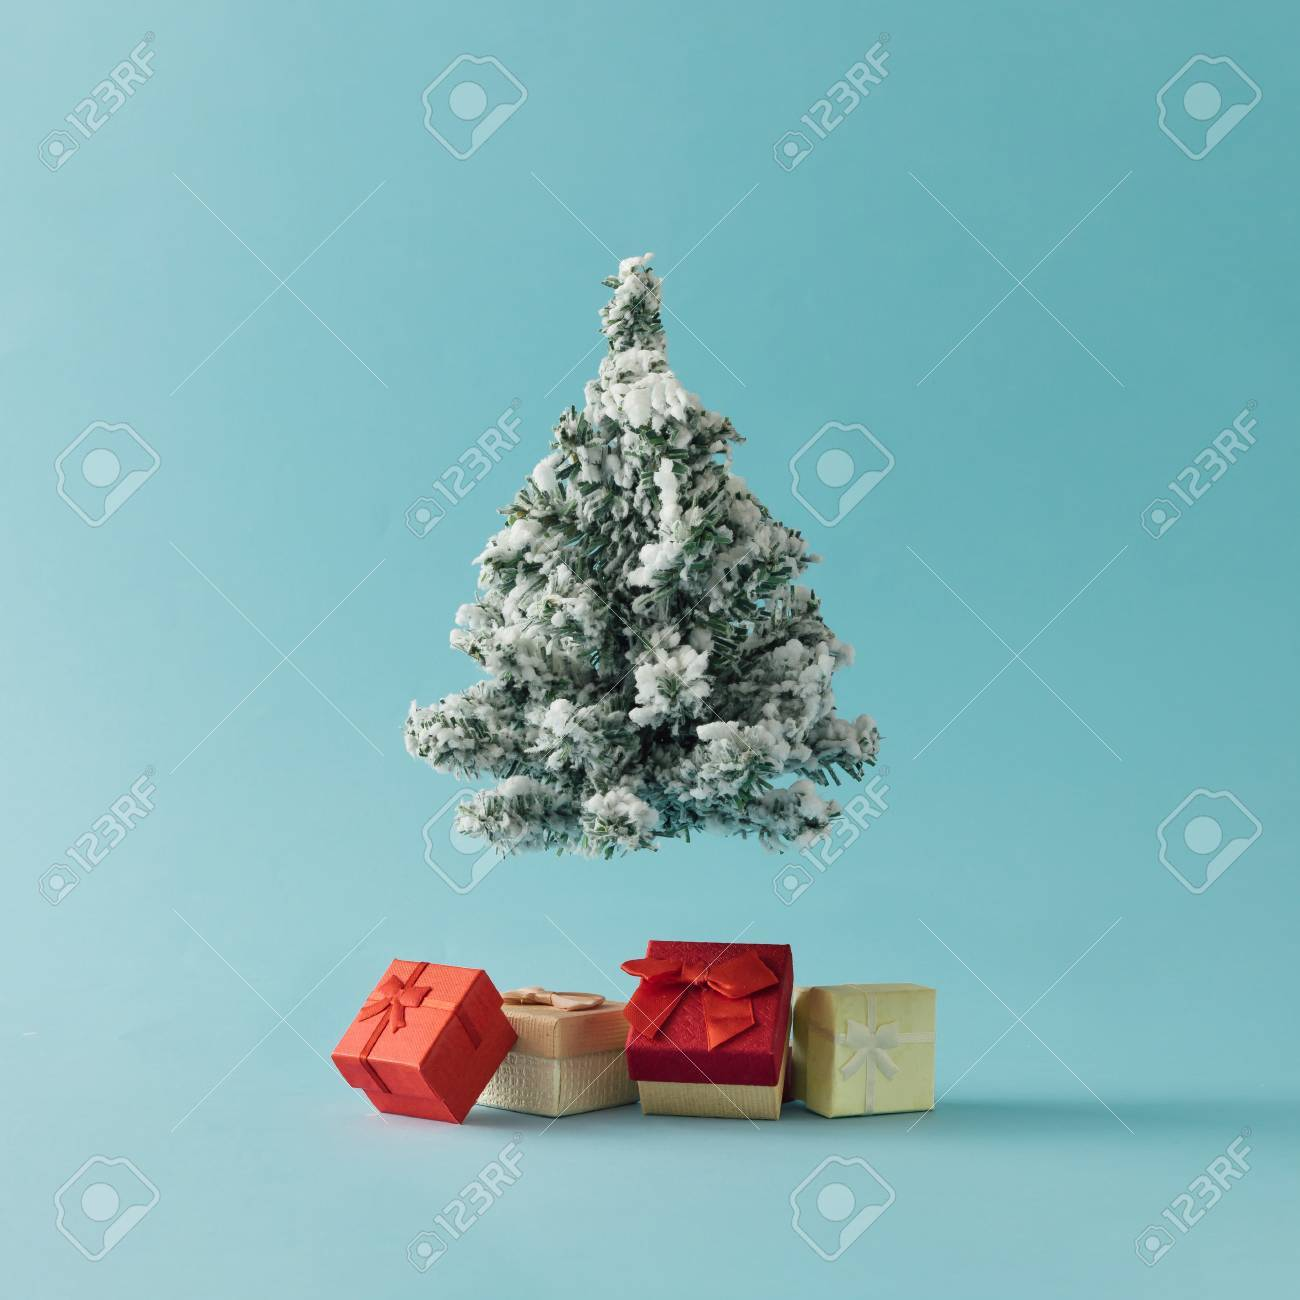 Christmas Tree with gift boxes on bright blue background. Minimal holiday concept. - 90321346